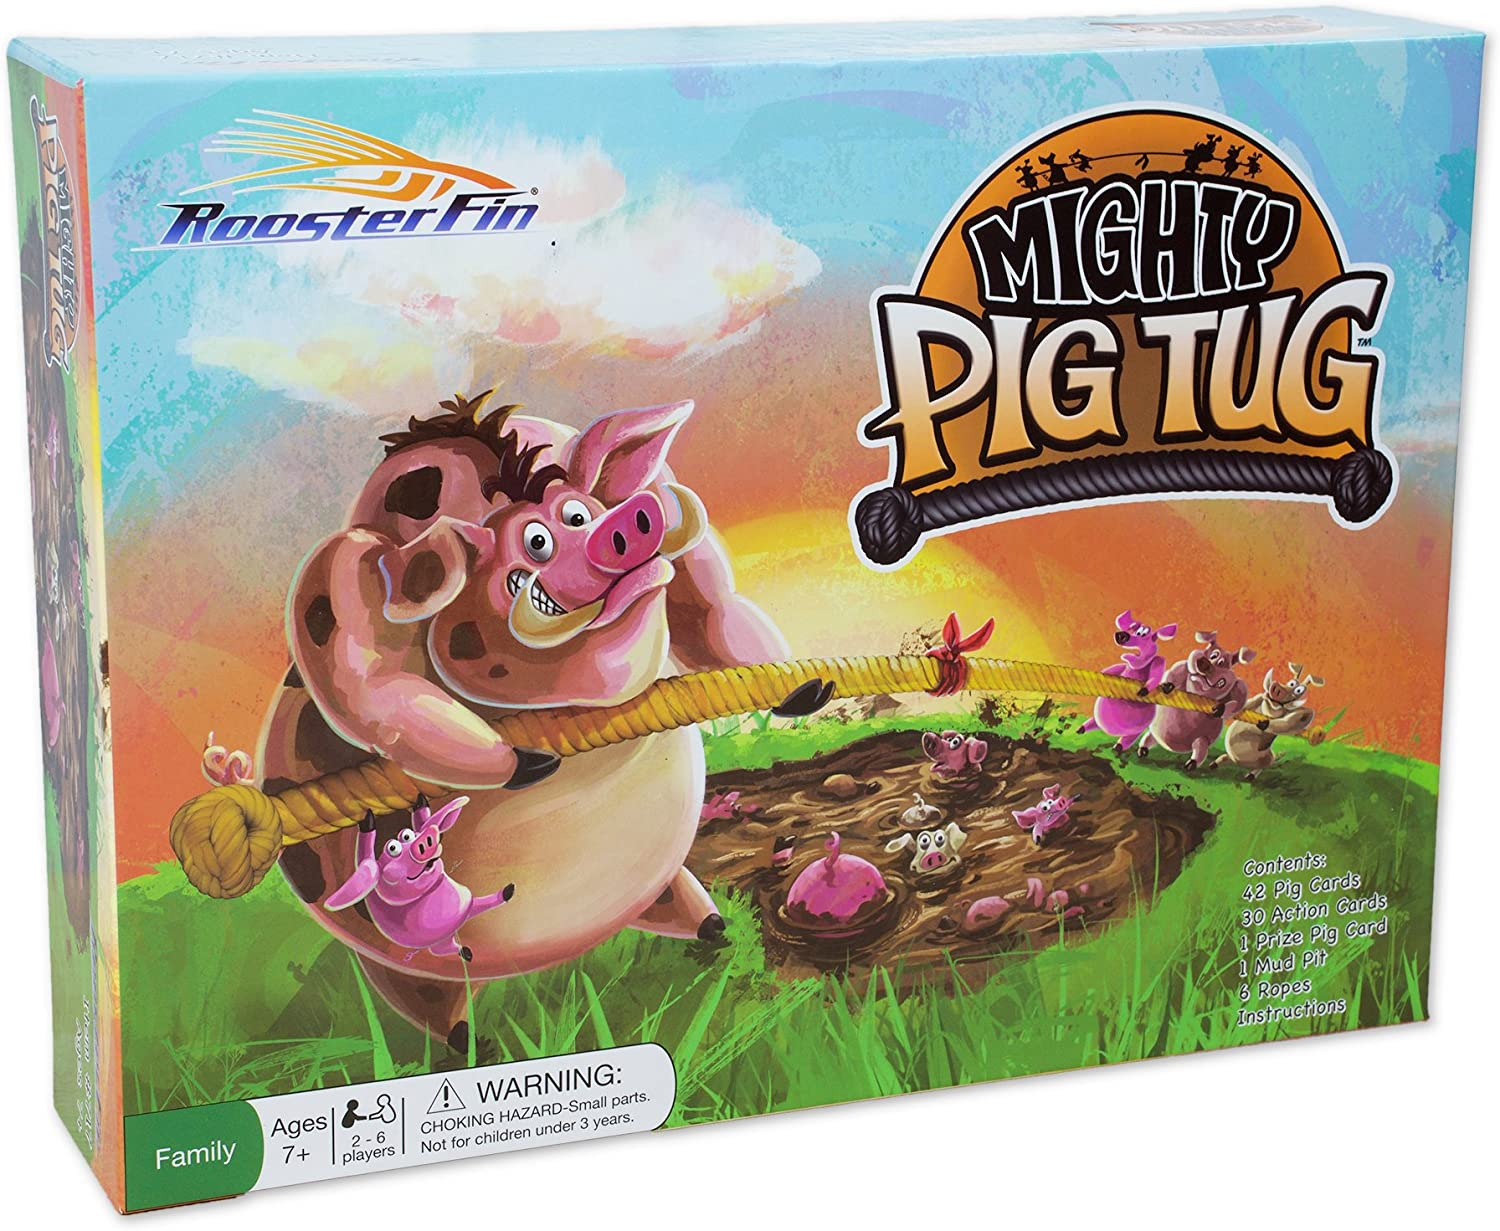 RoosterFin - Mighty Pig Tug Family Board Game - Card Game of Tug of War with a Team - Teacher Created Educational Fun for All Kids and Adults 7 and Up, RSF717